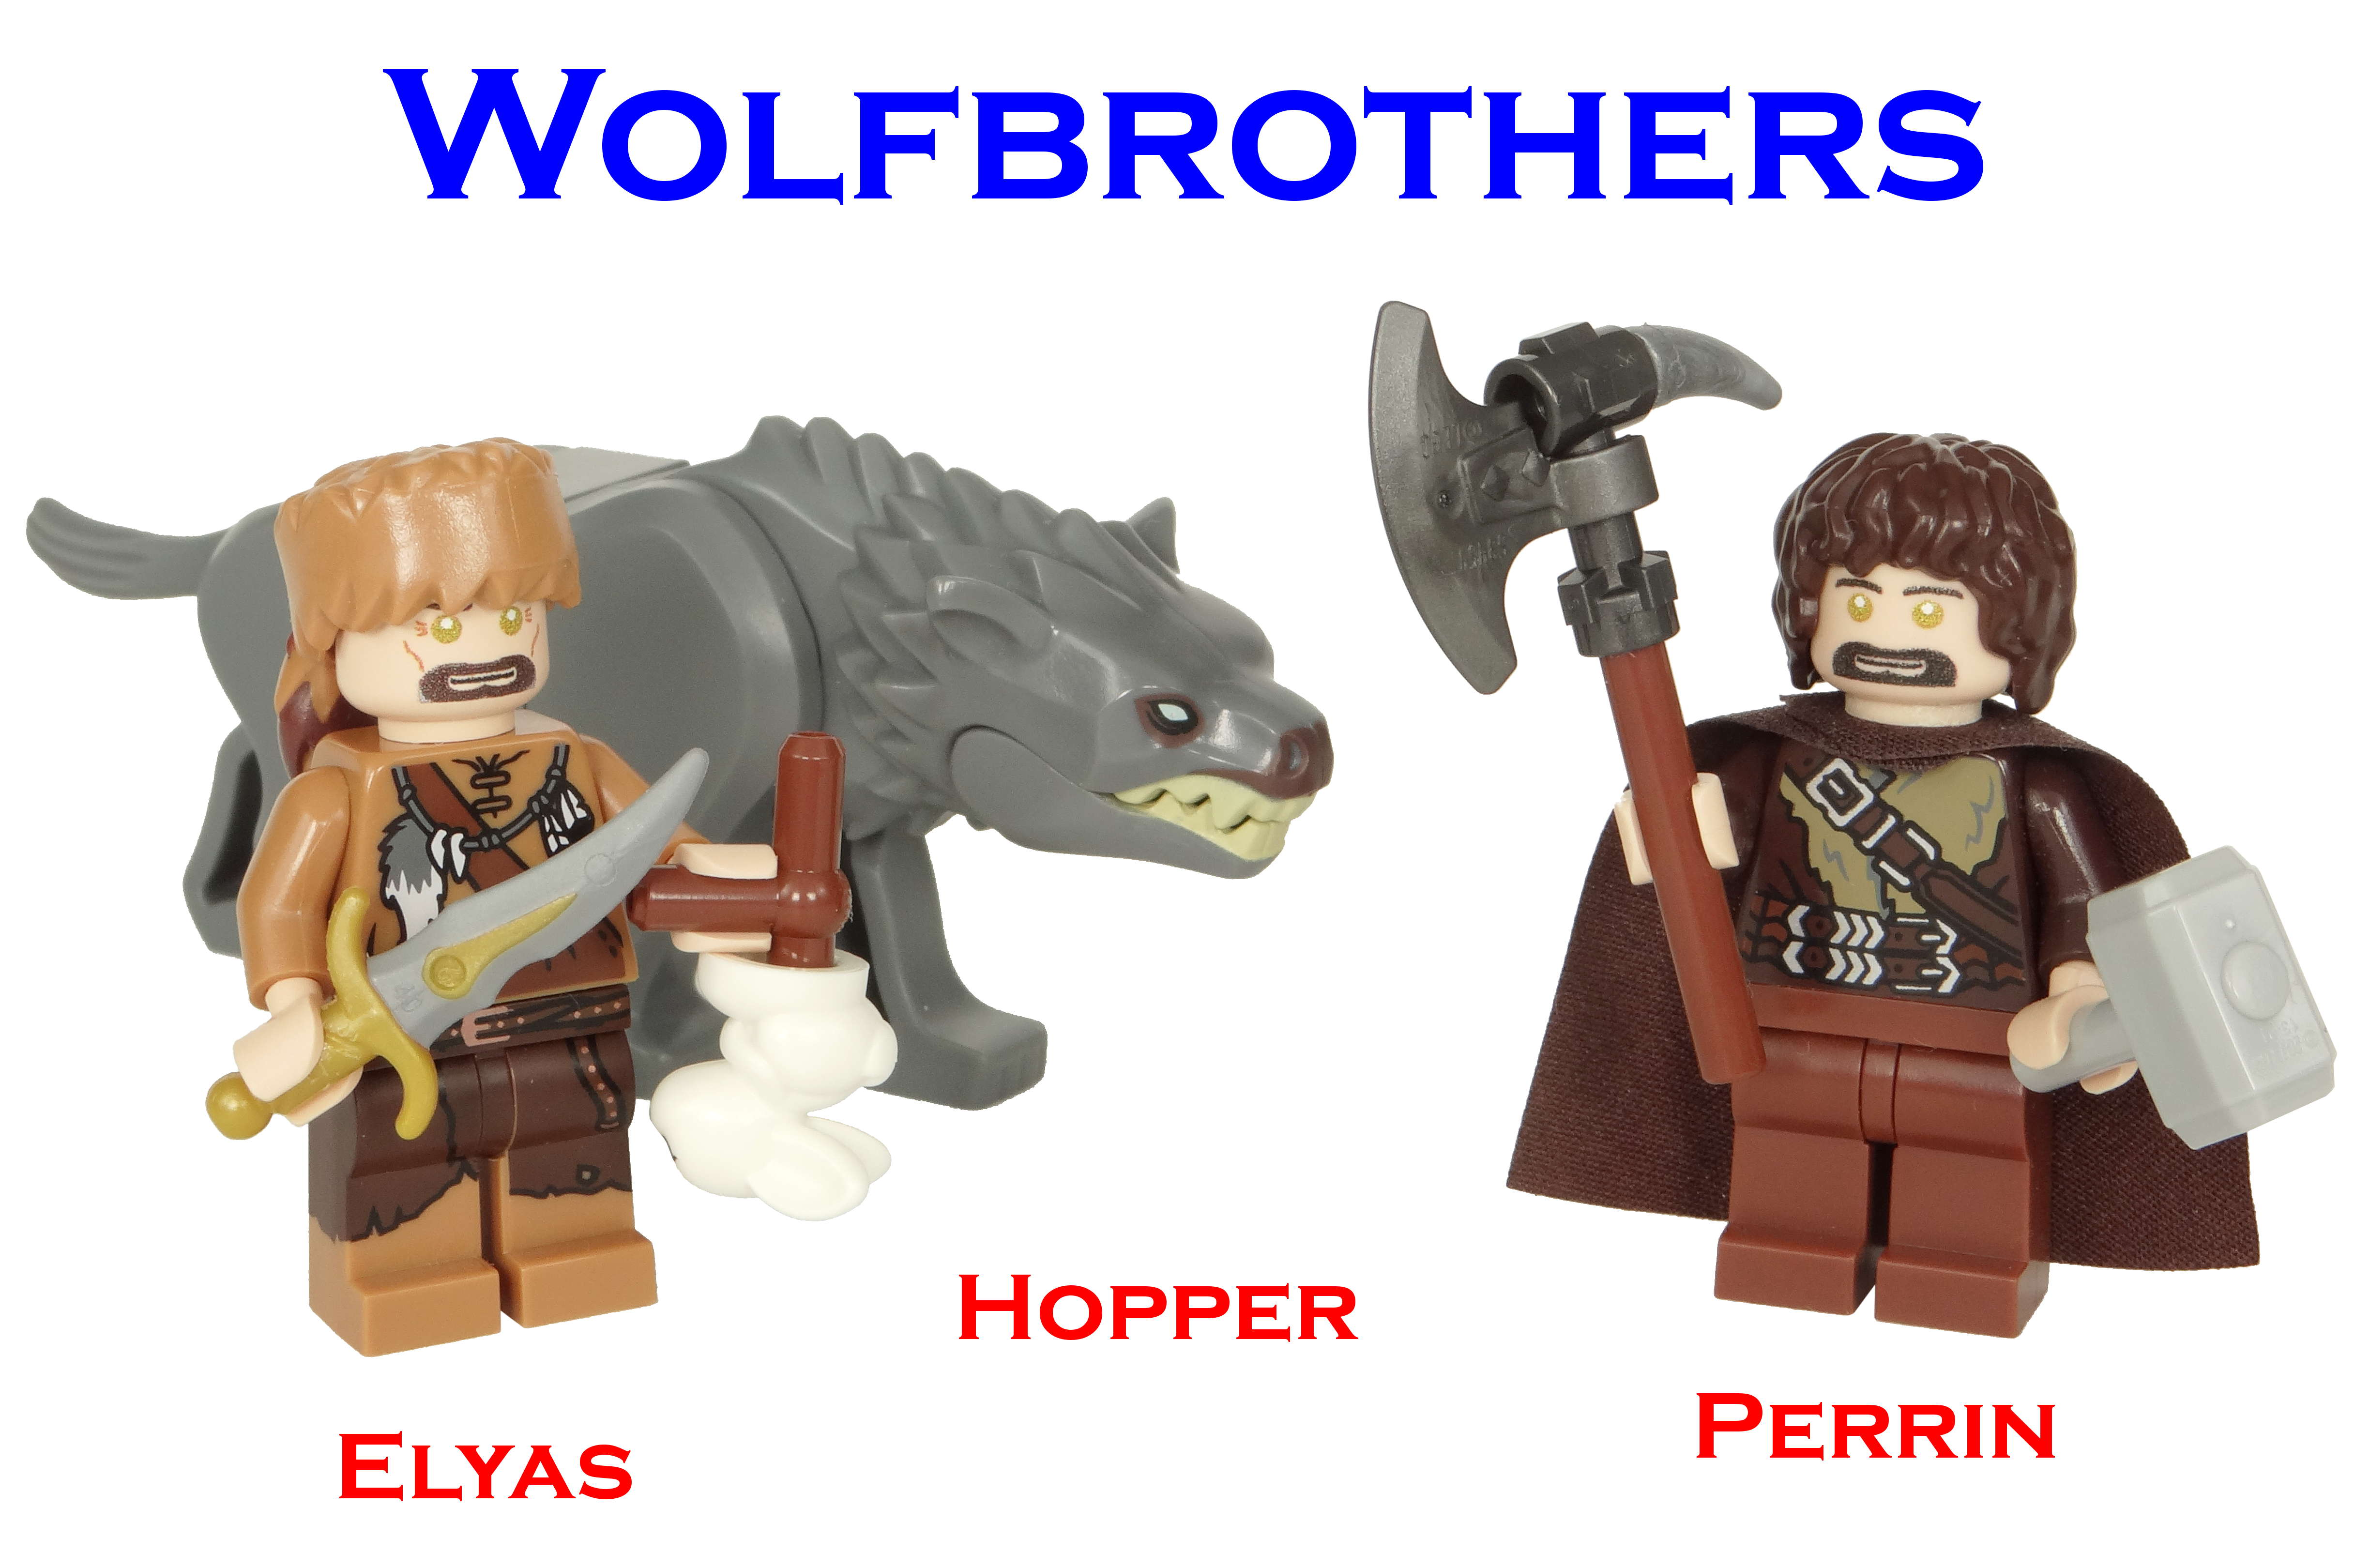 wolfbrothers